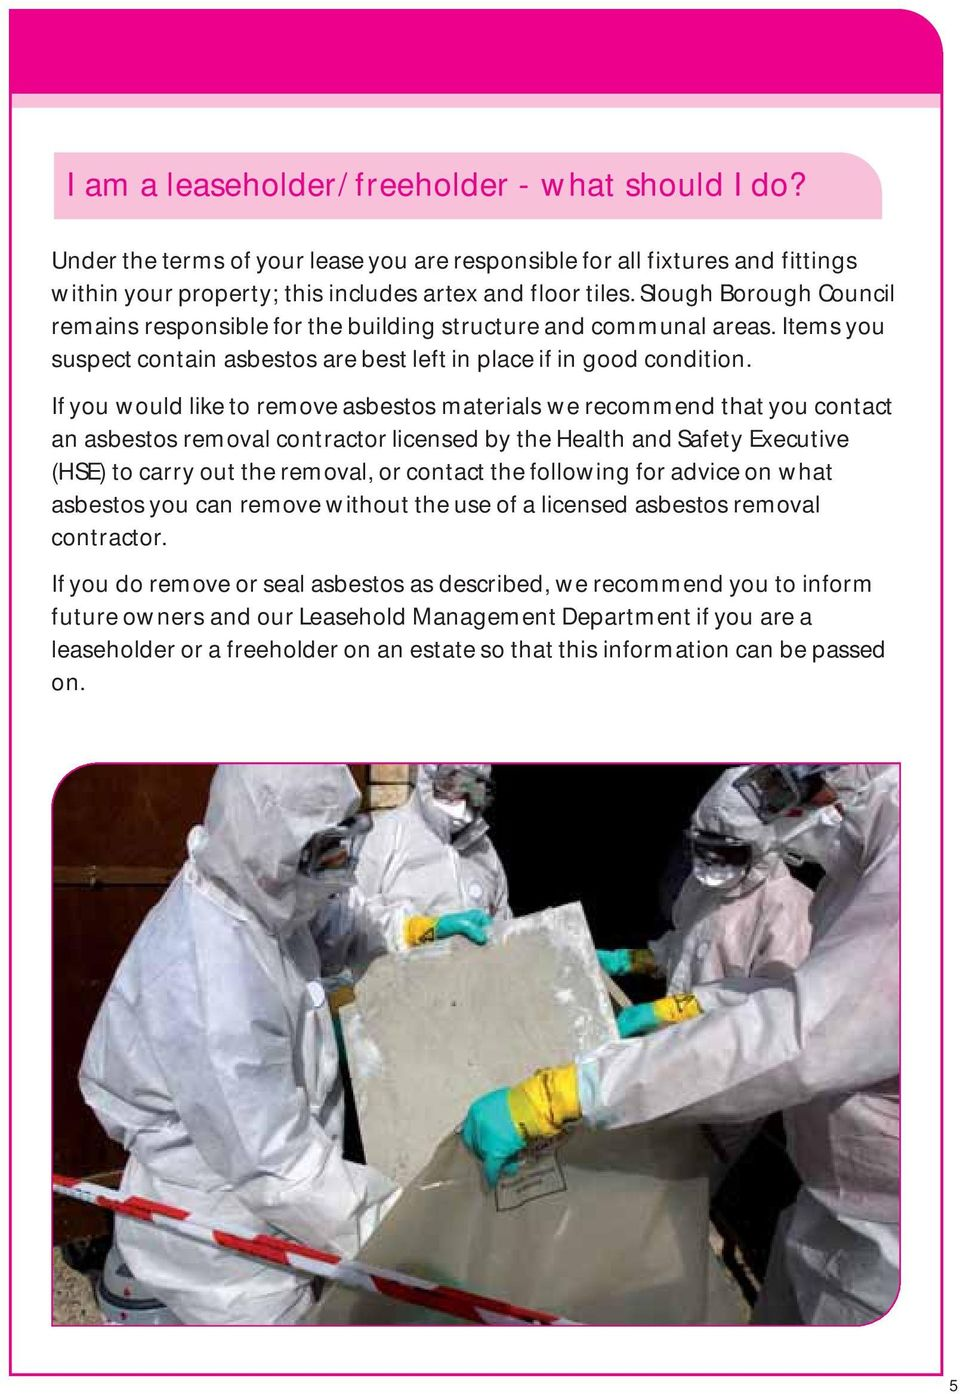 If you would like to remove asbestos materials we recommend that you contact an asbestos removal contractor licensed by the Health and Safety Executive (HSE) to carry out the removal, or contact the